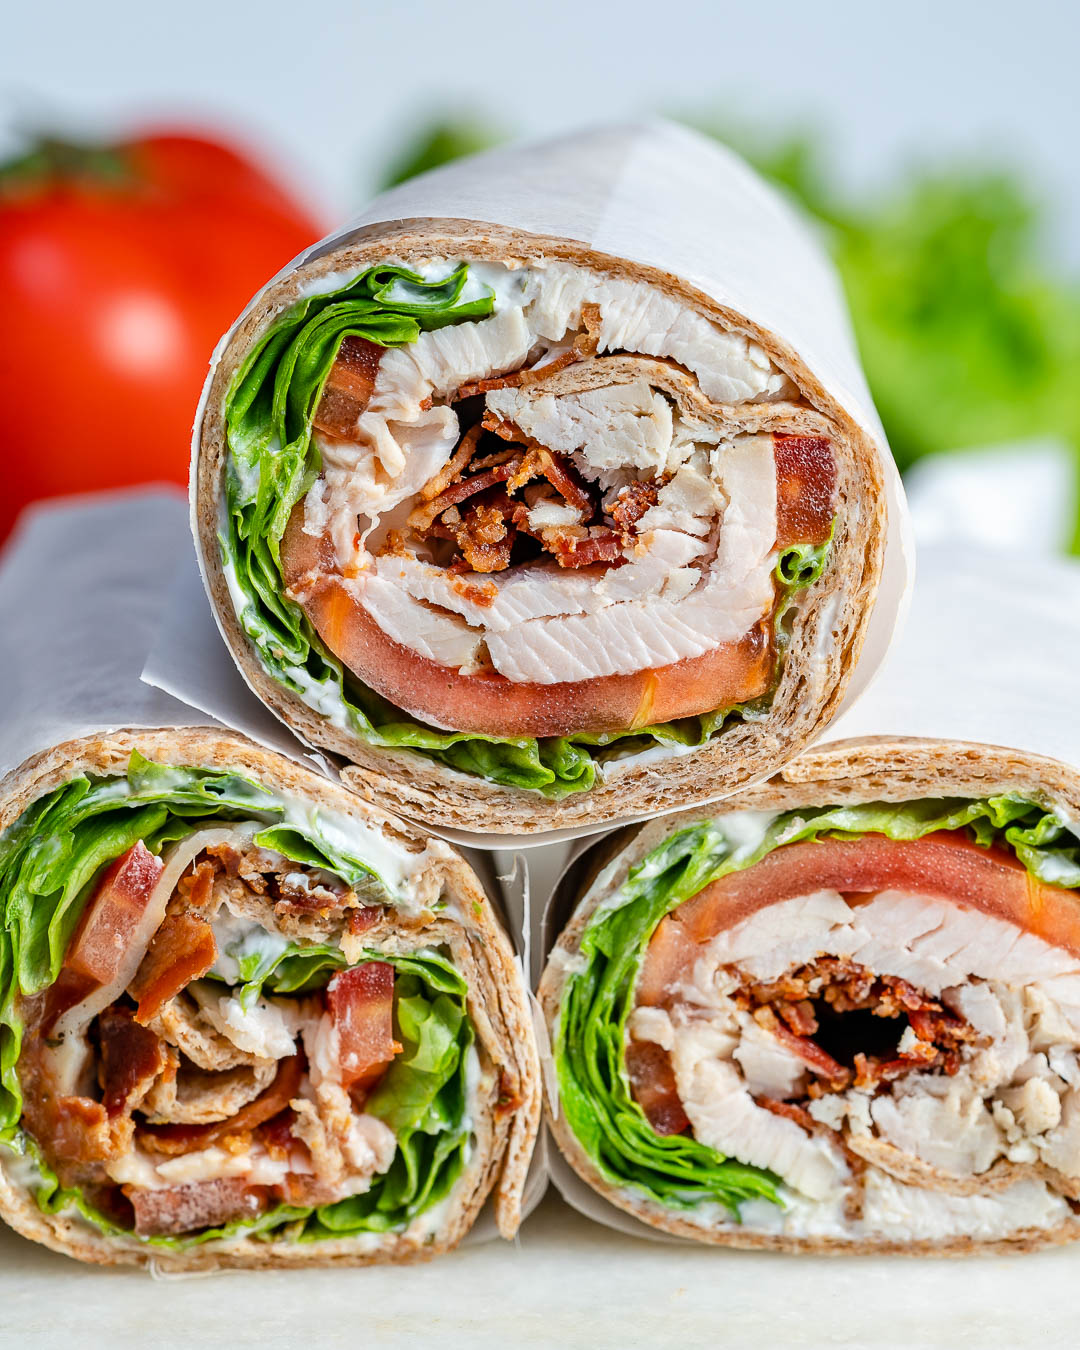 Leftover Tangy Turkey Ranch Club Wraps Recipe